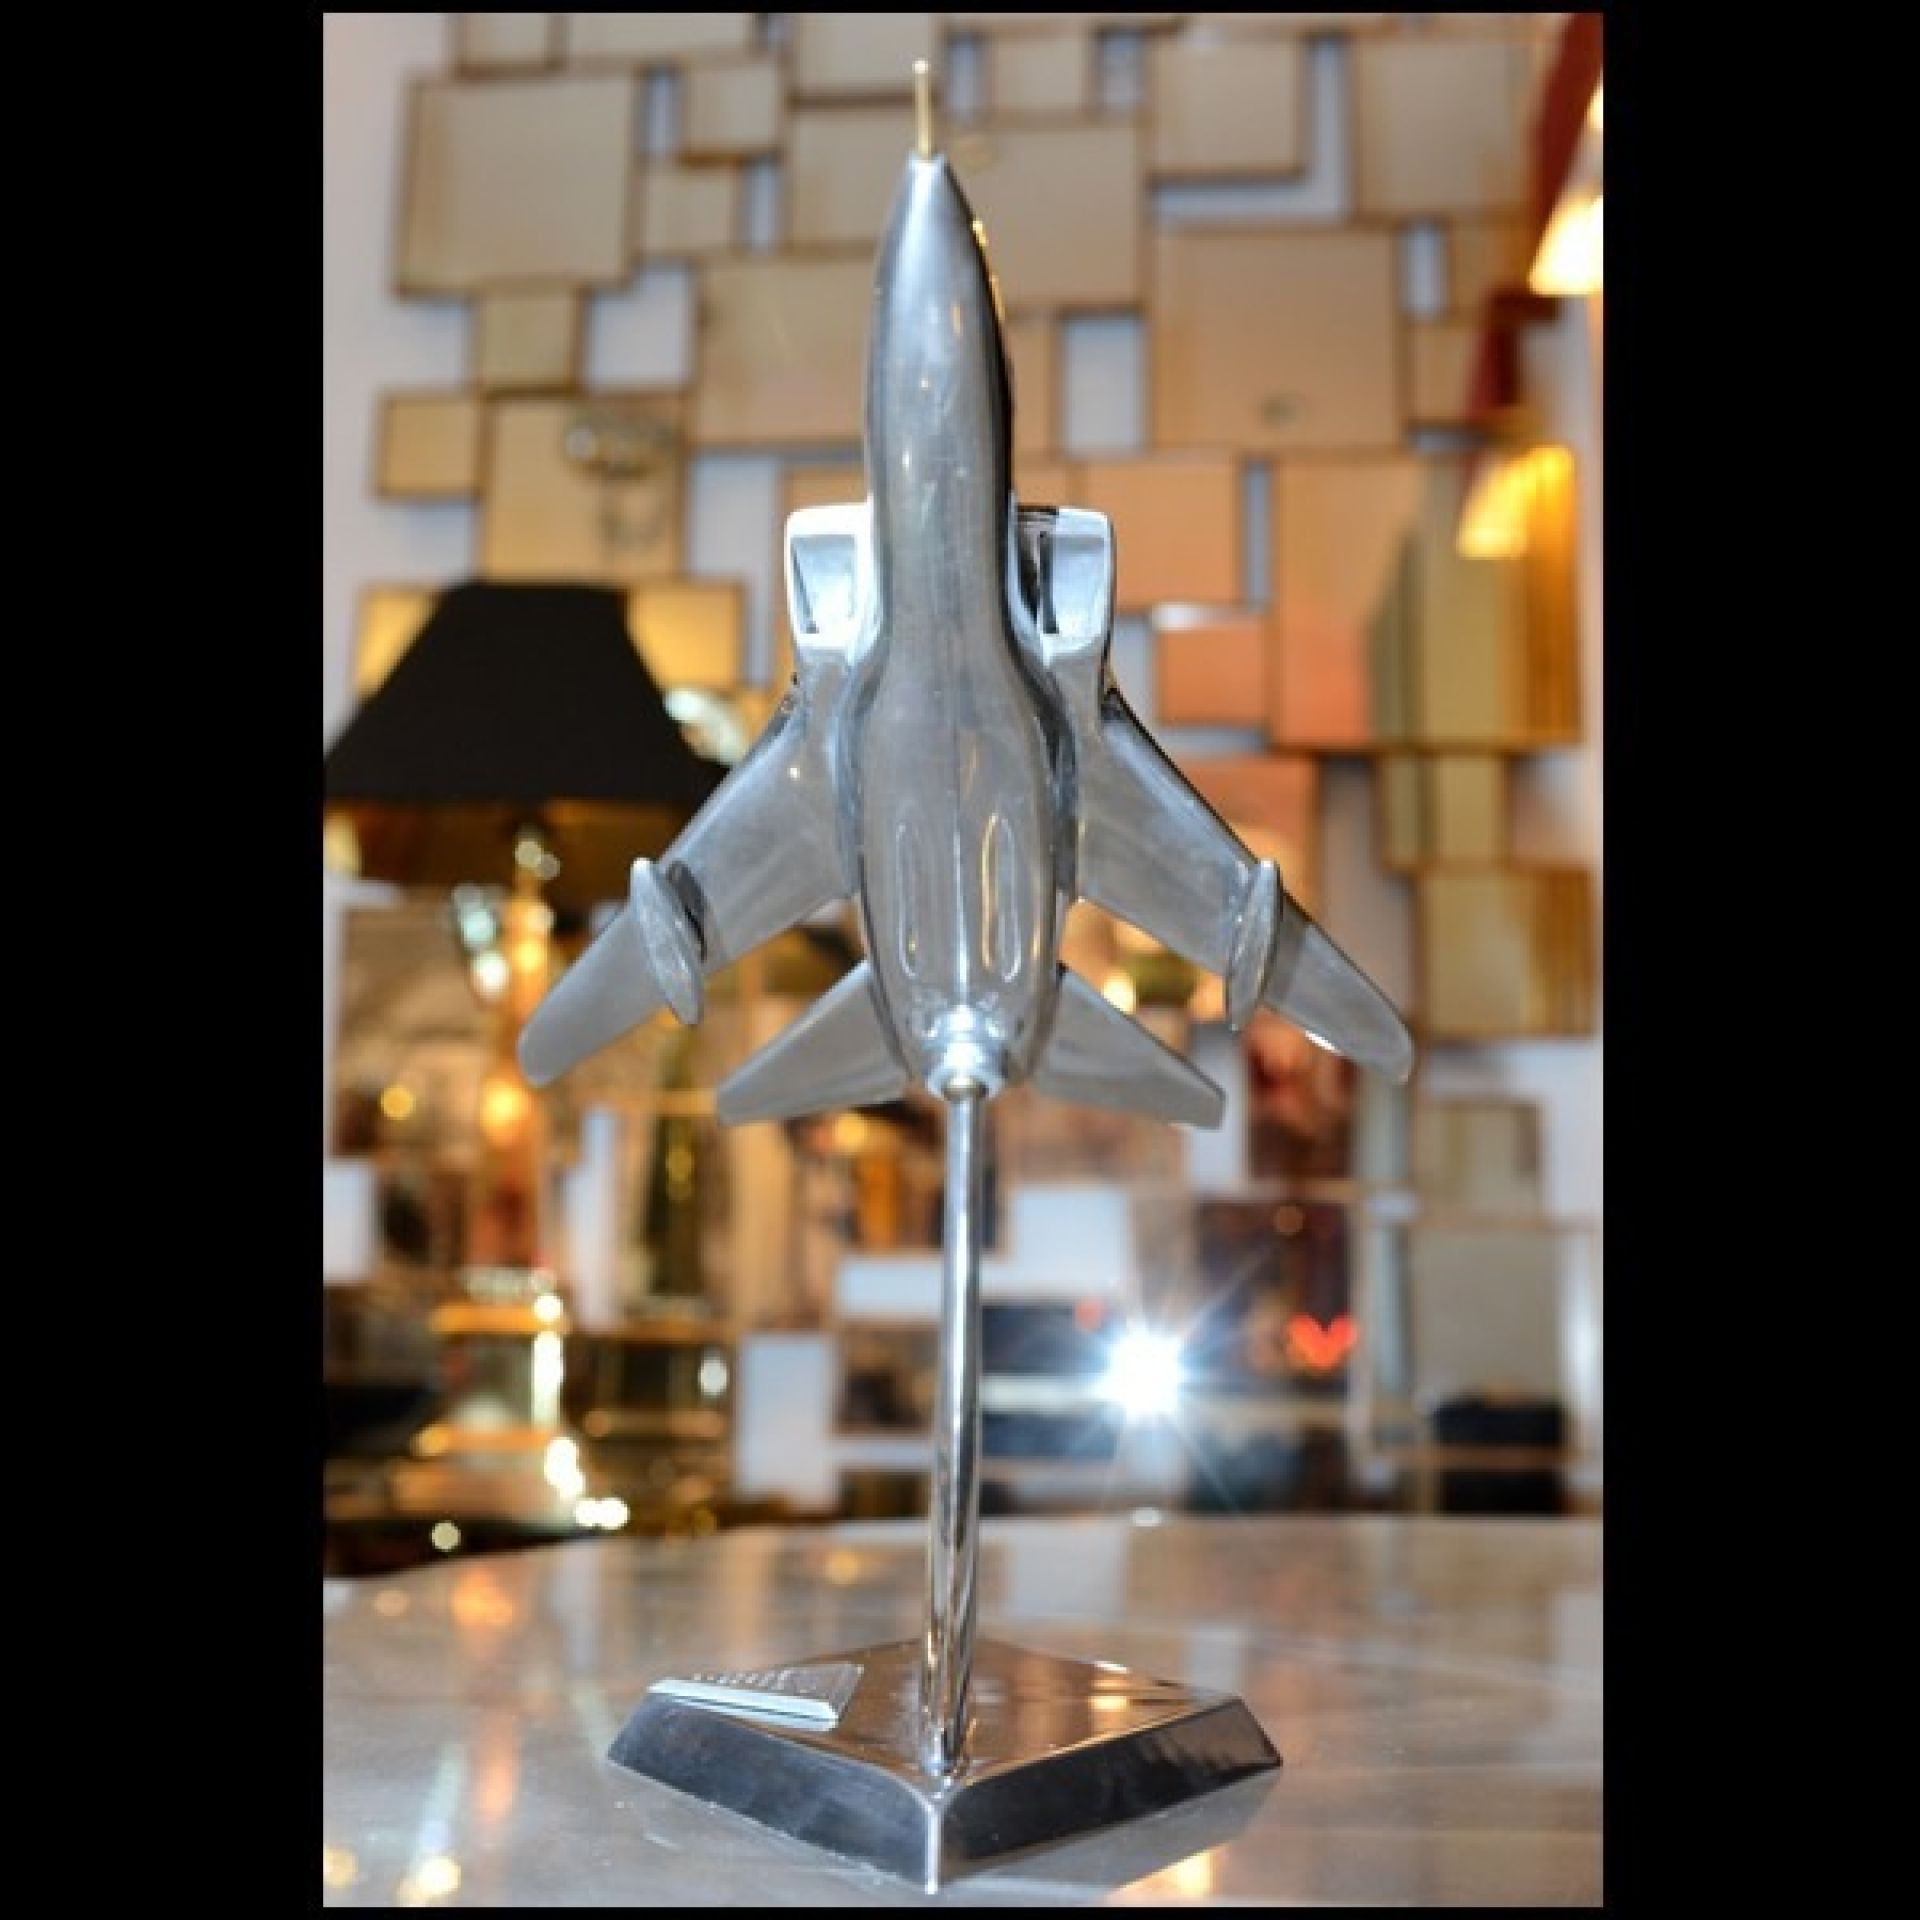 1974 TORNADO FIGHTER PLANE MODEL IN POLISHED ALUMINUM ON 113-TORNADO BASE